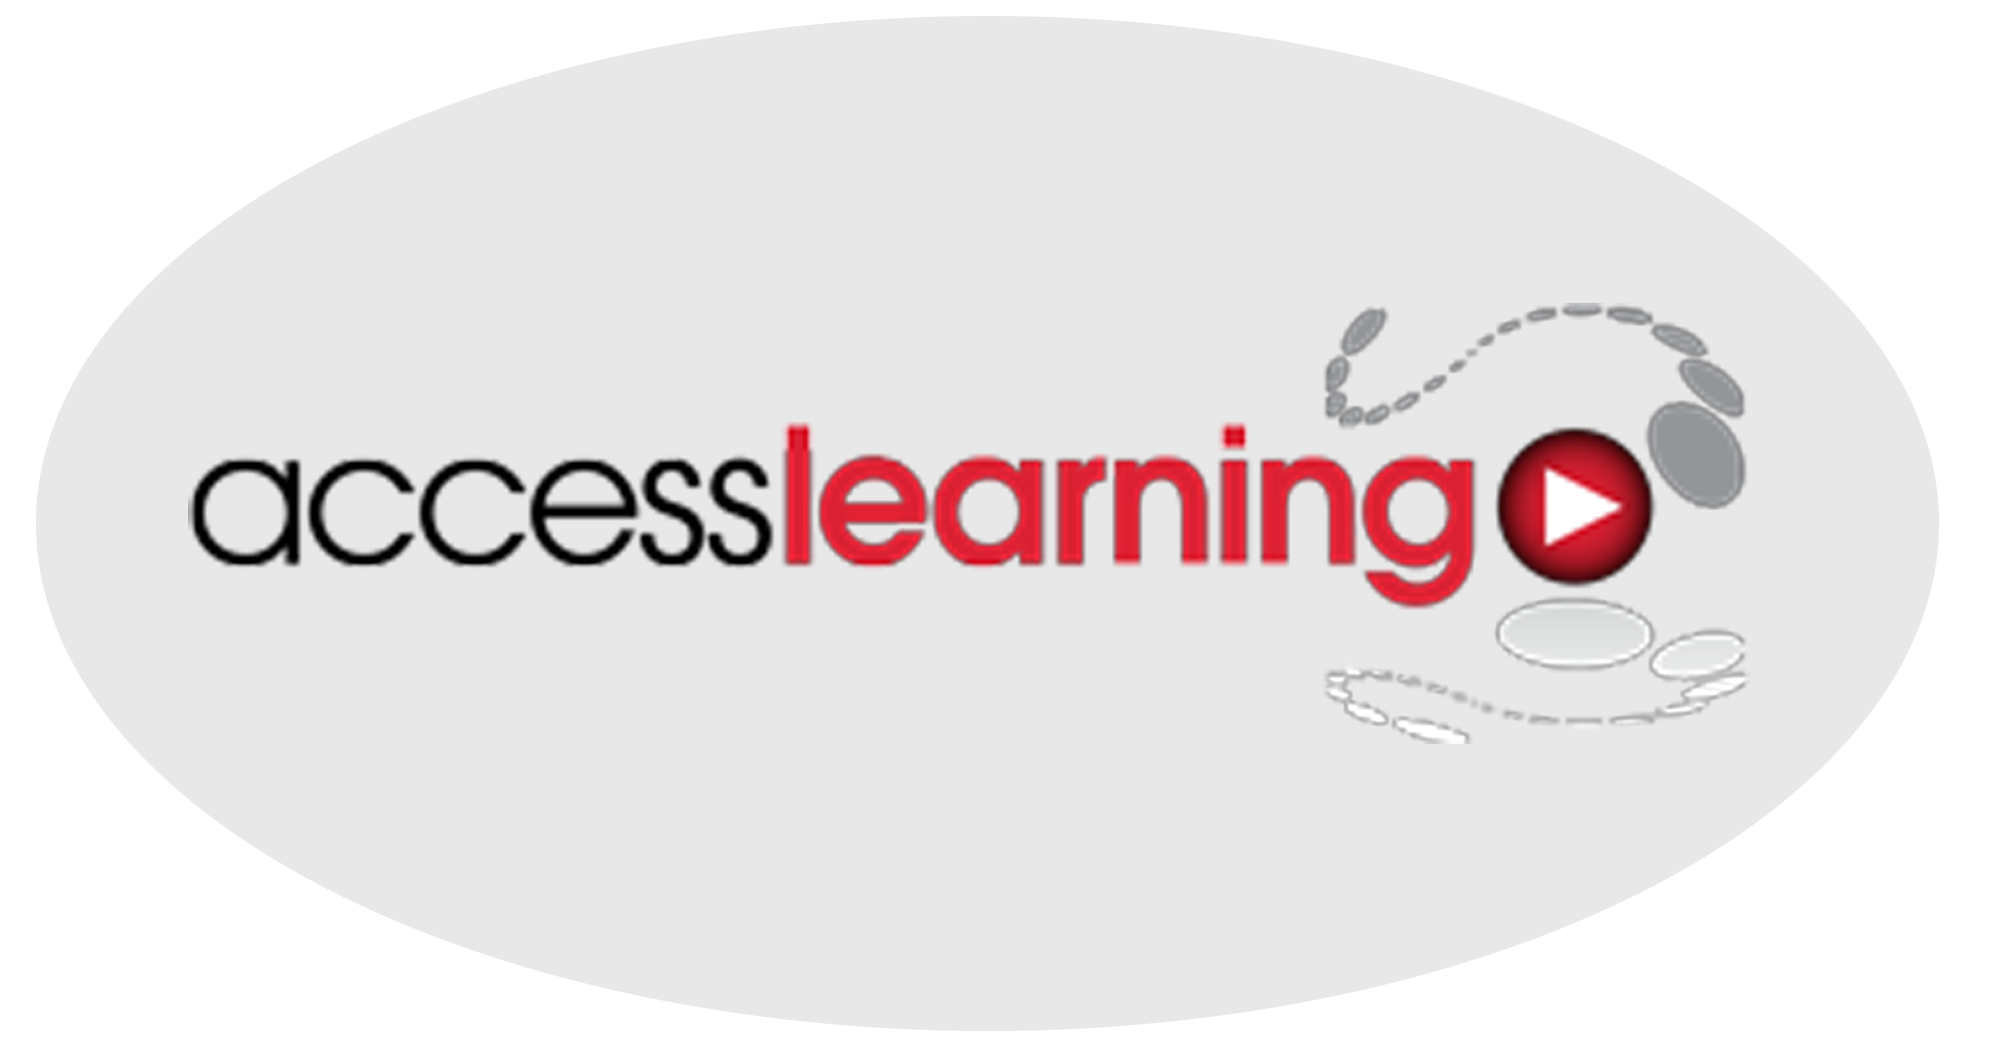 Access Learning - Distribution Access